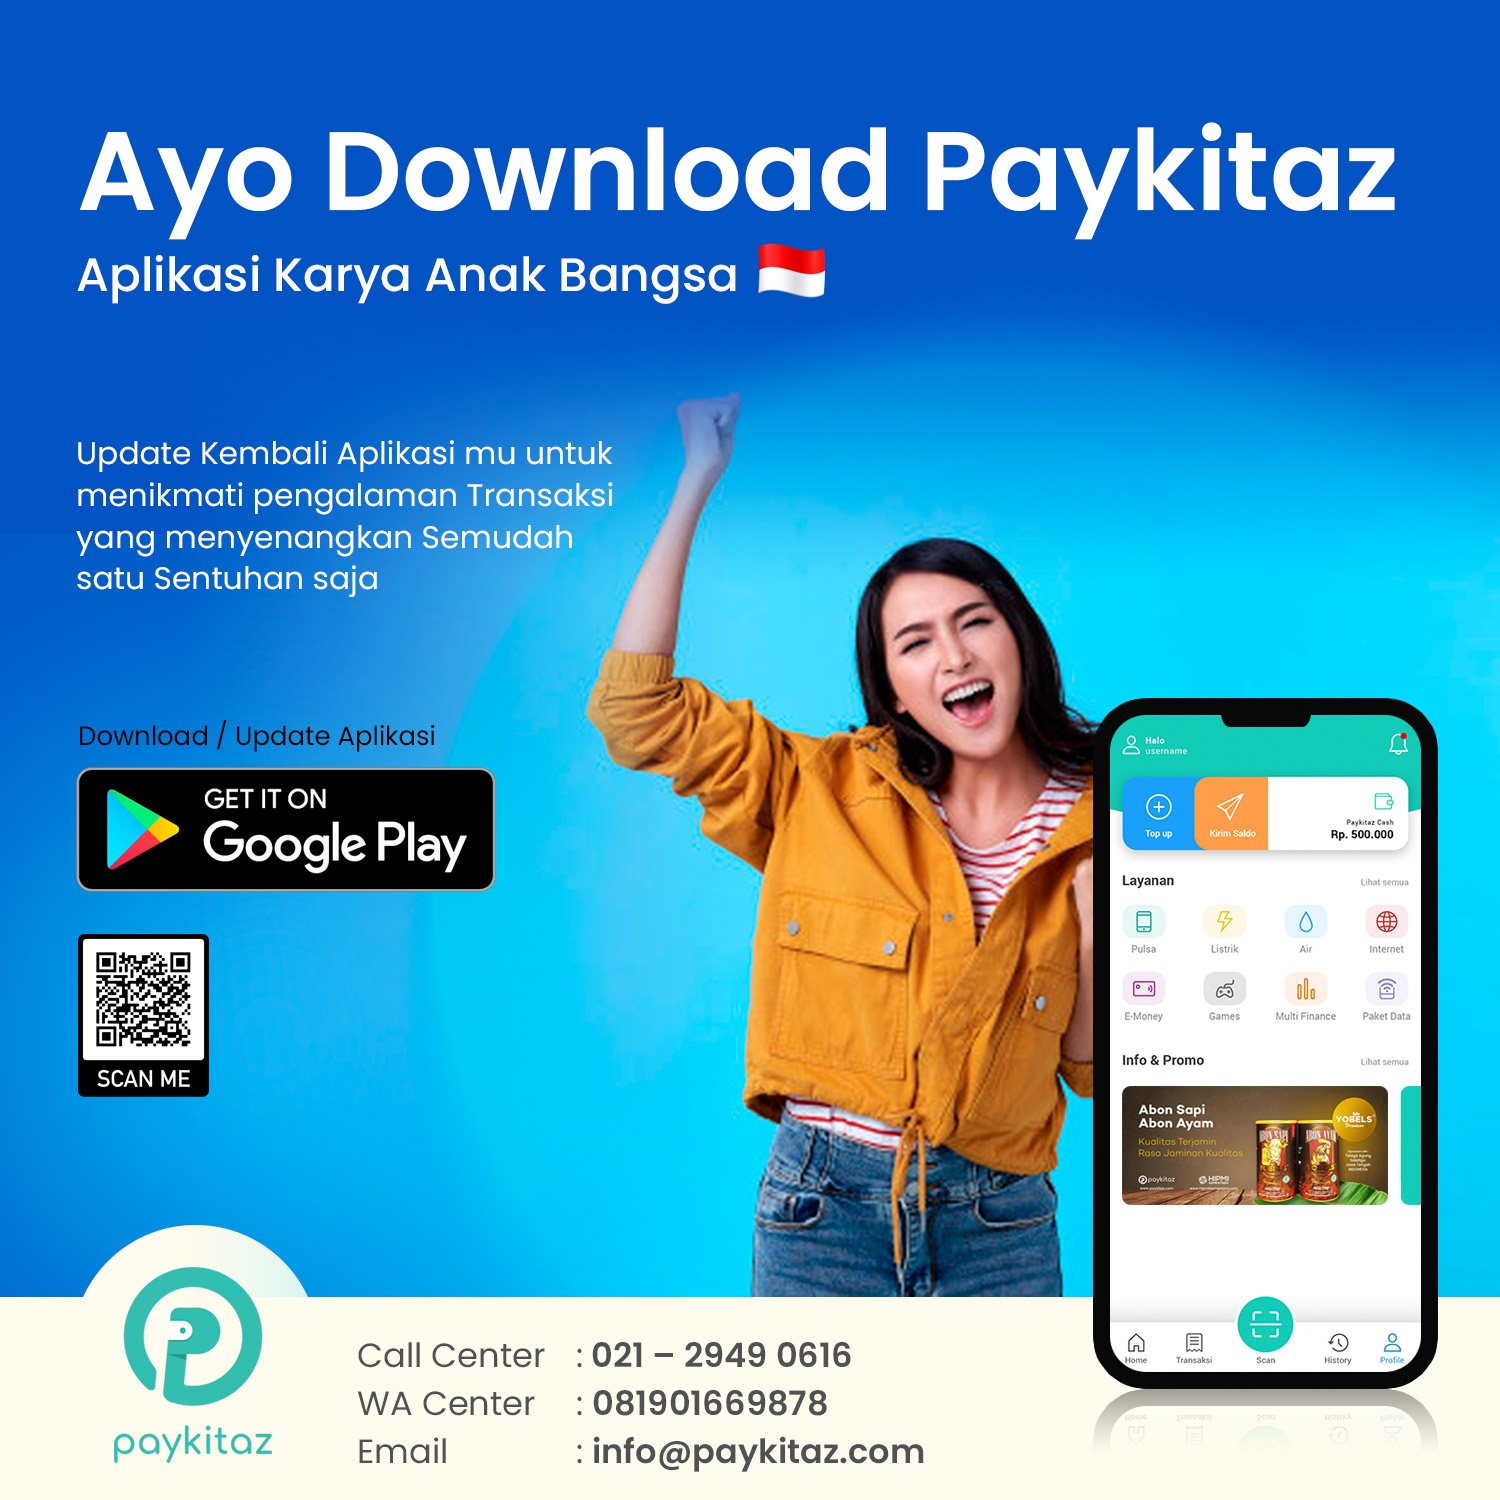 download-paykitaz-banner-square